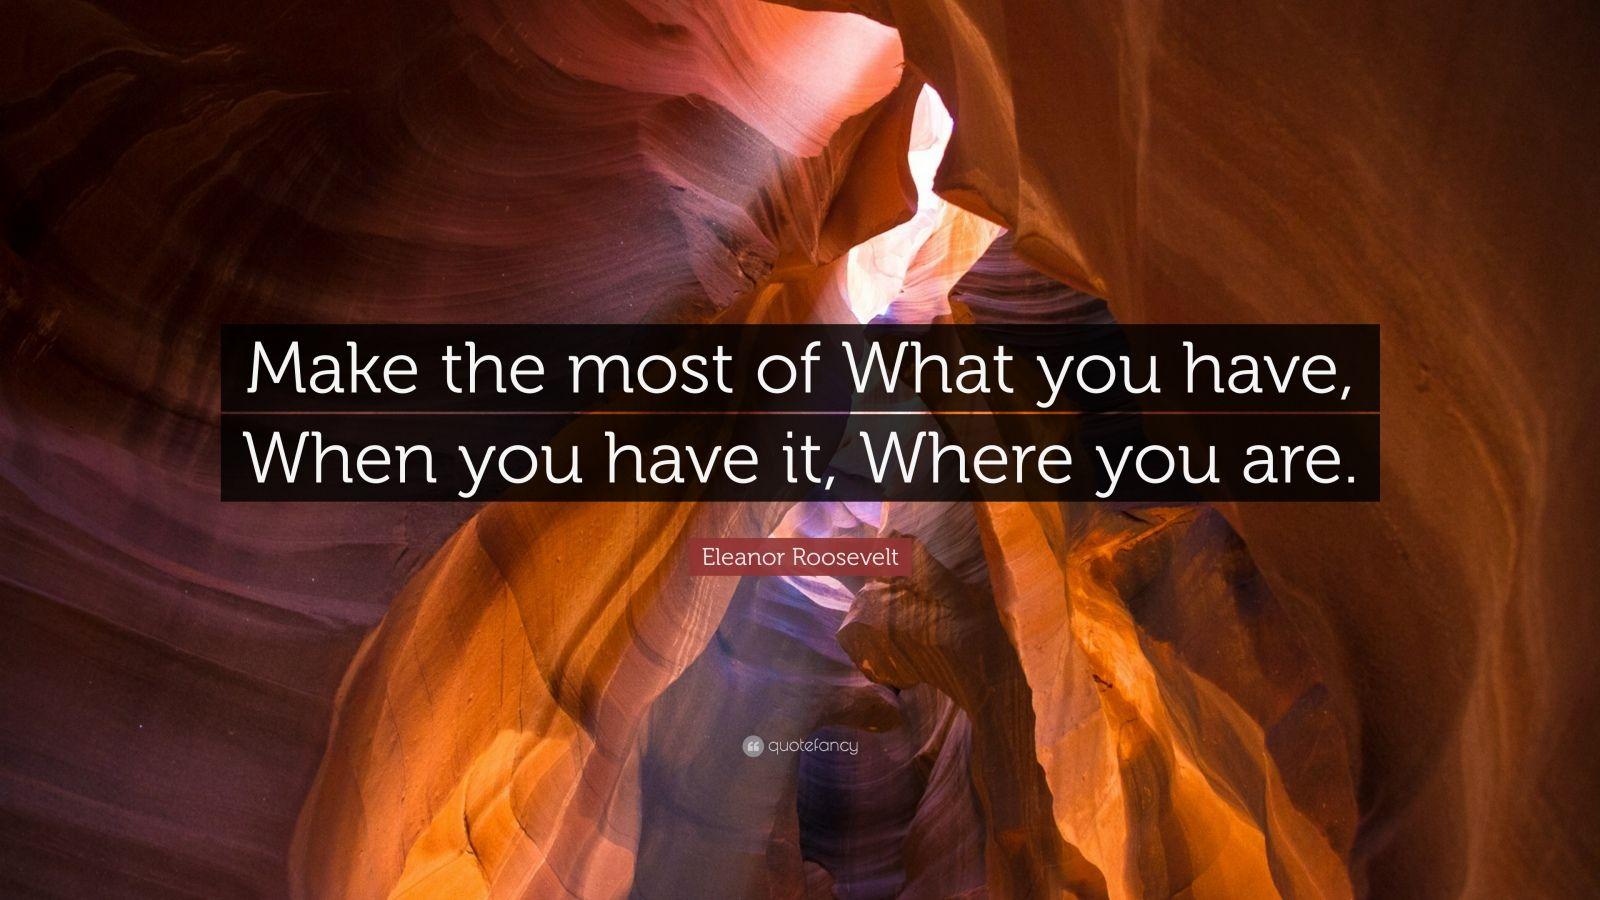 """Eleanor Roosevelt Quote: """"Make the most of What you have, When you have it, Where you are."""""""